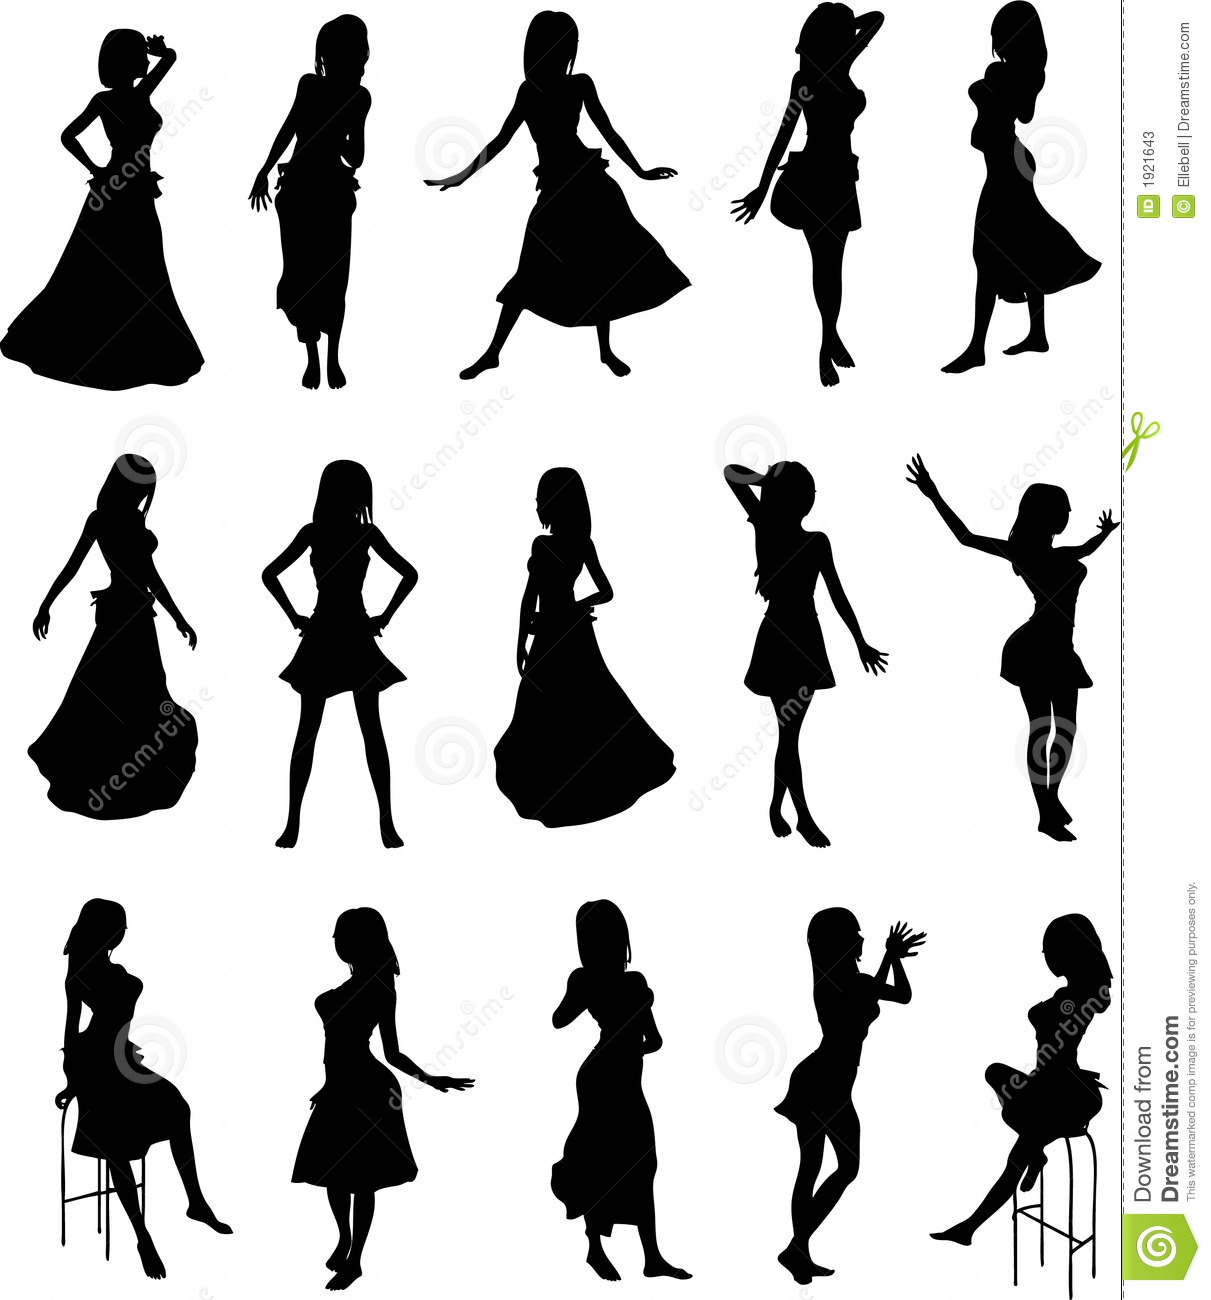 Girls In Dresses Silhouettes Stock Vector